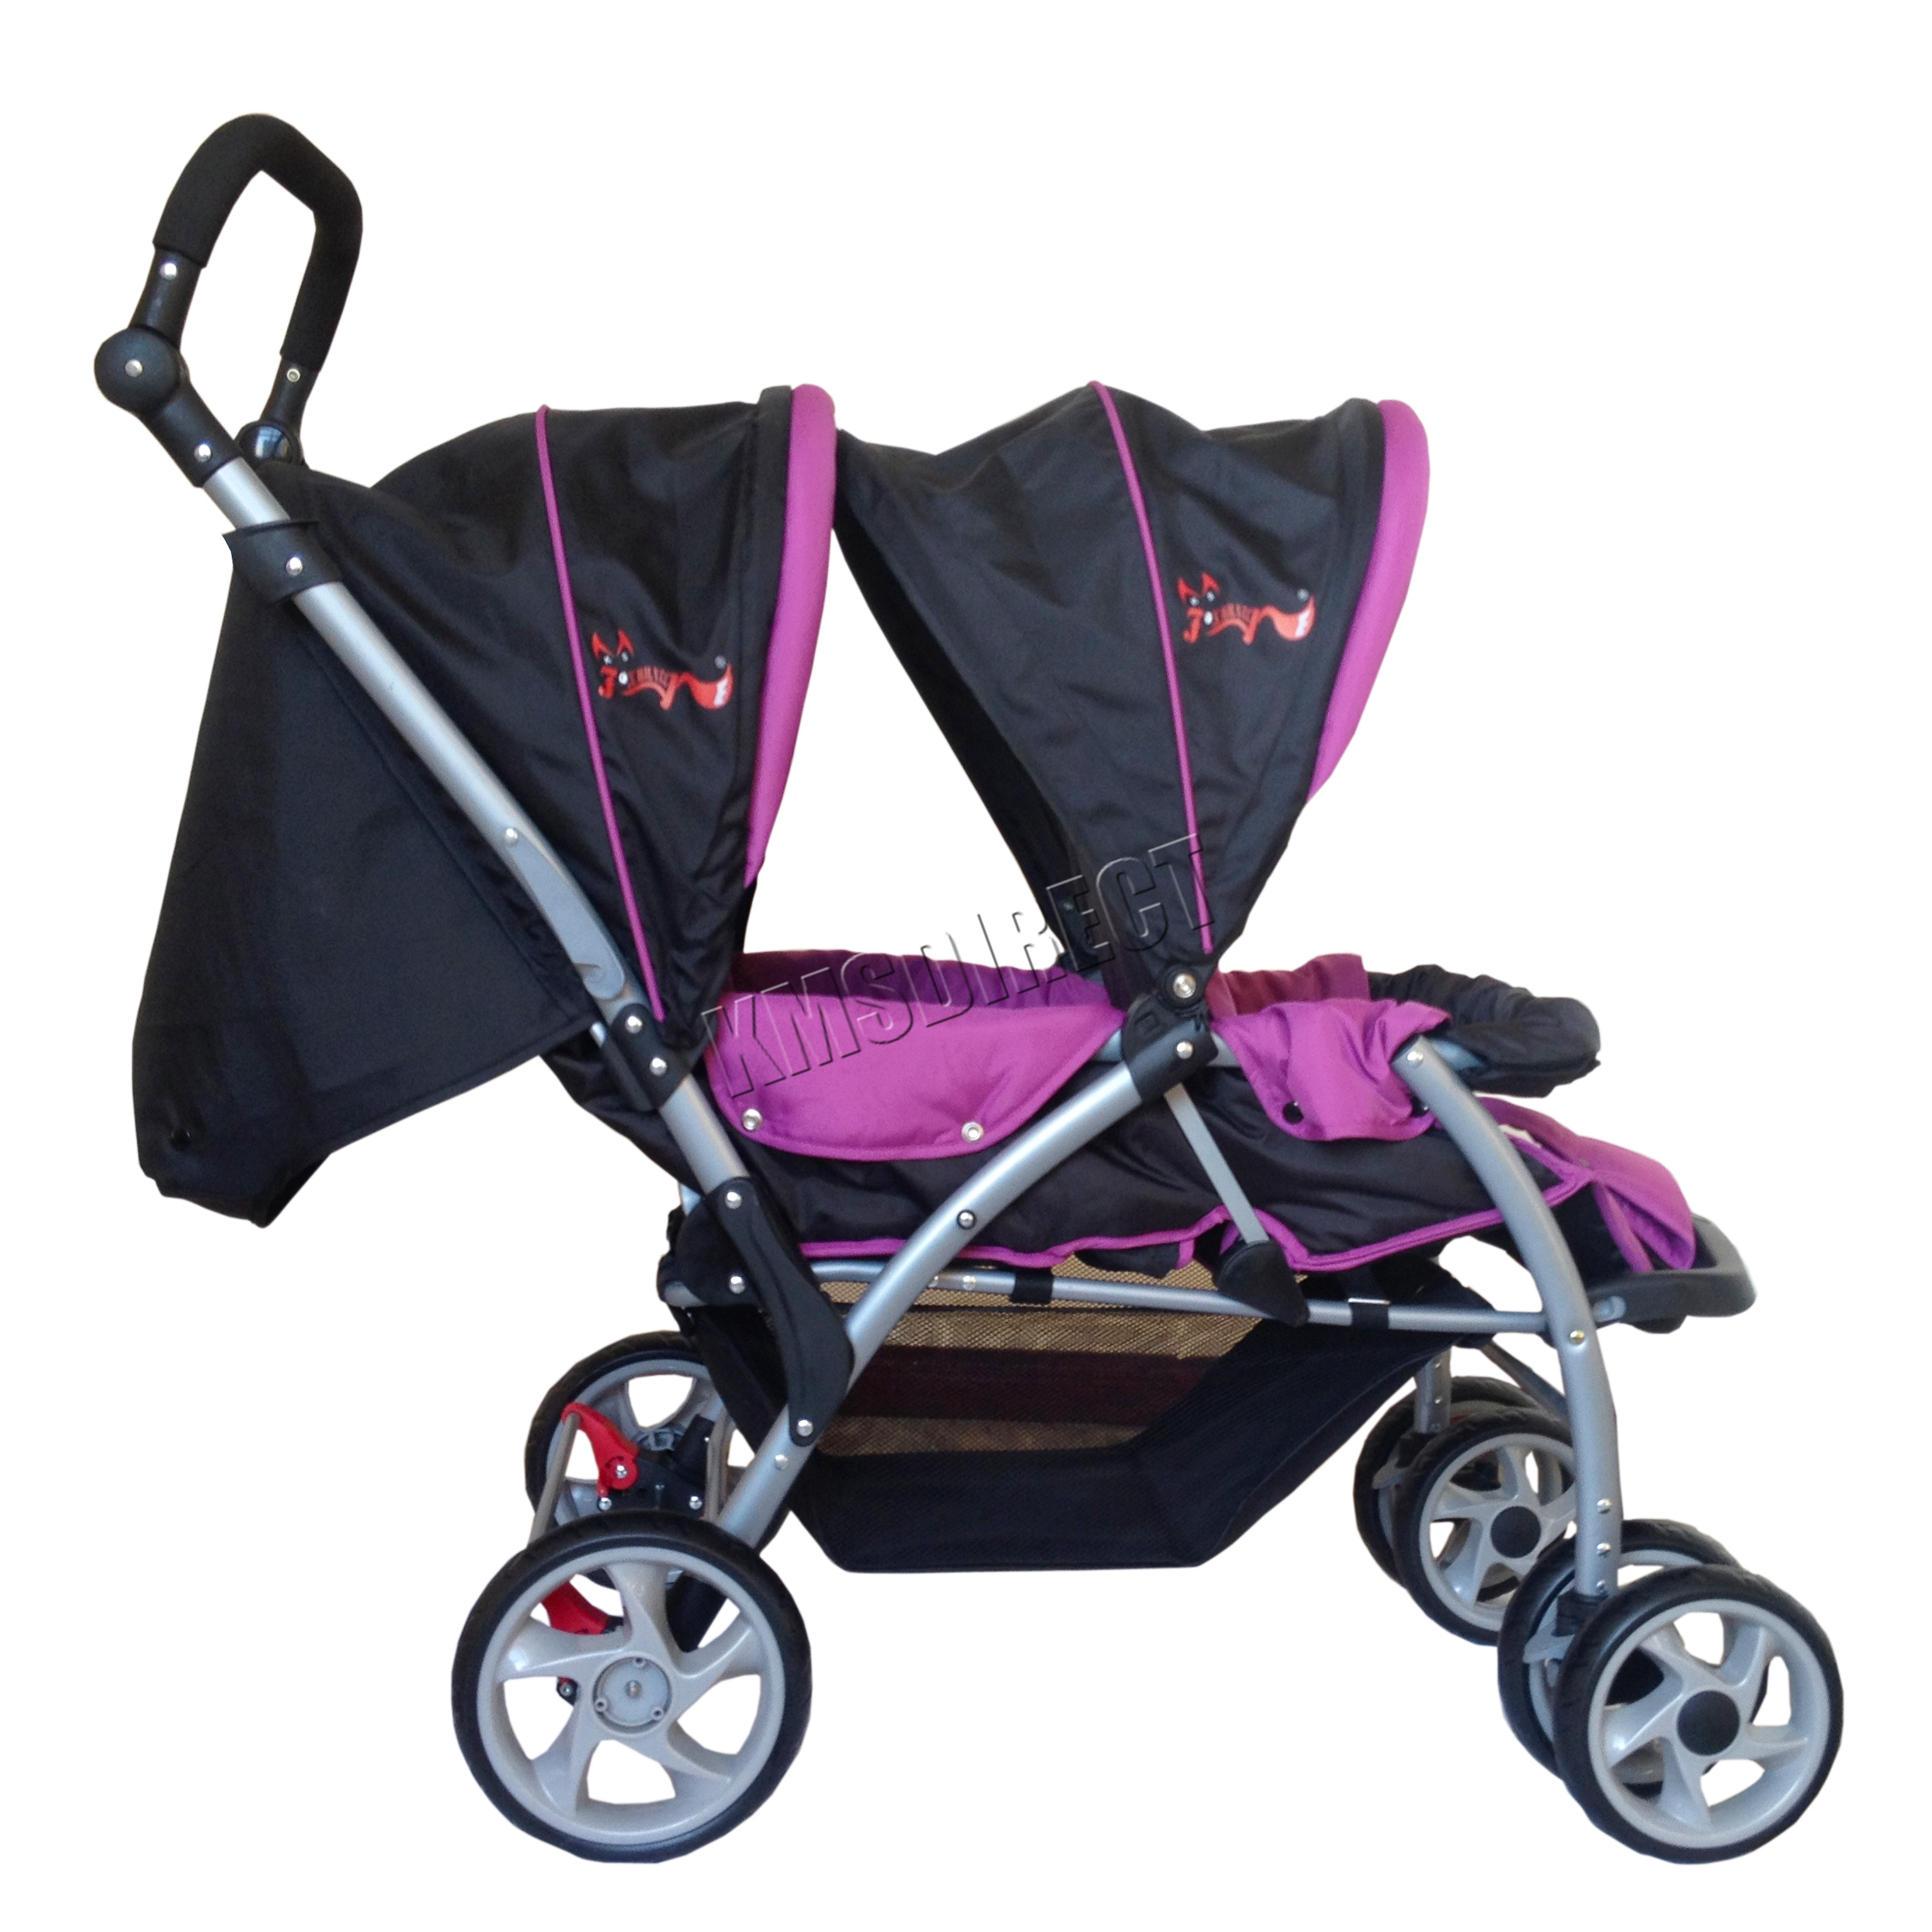 Stroller Cover Twin Foxhunter Baby Toddler Tandem Double Stroller Twin